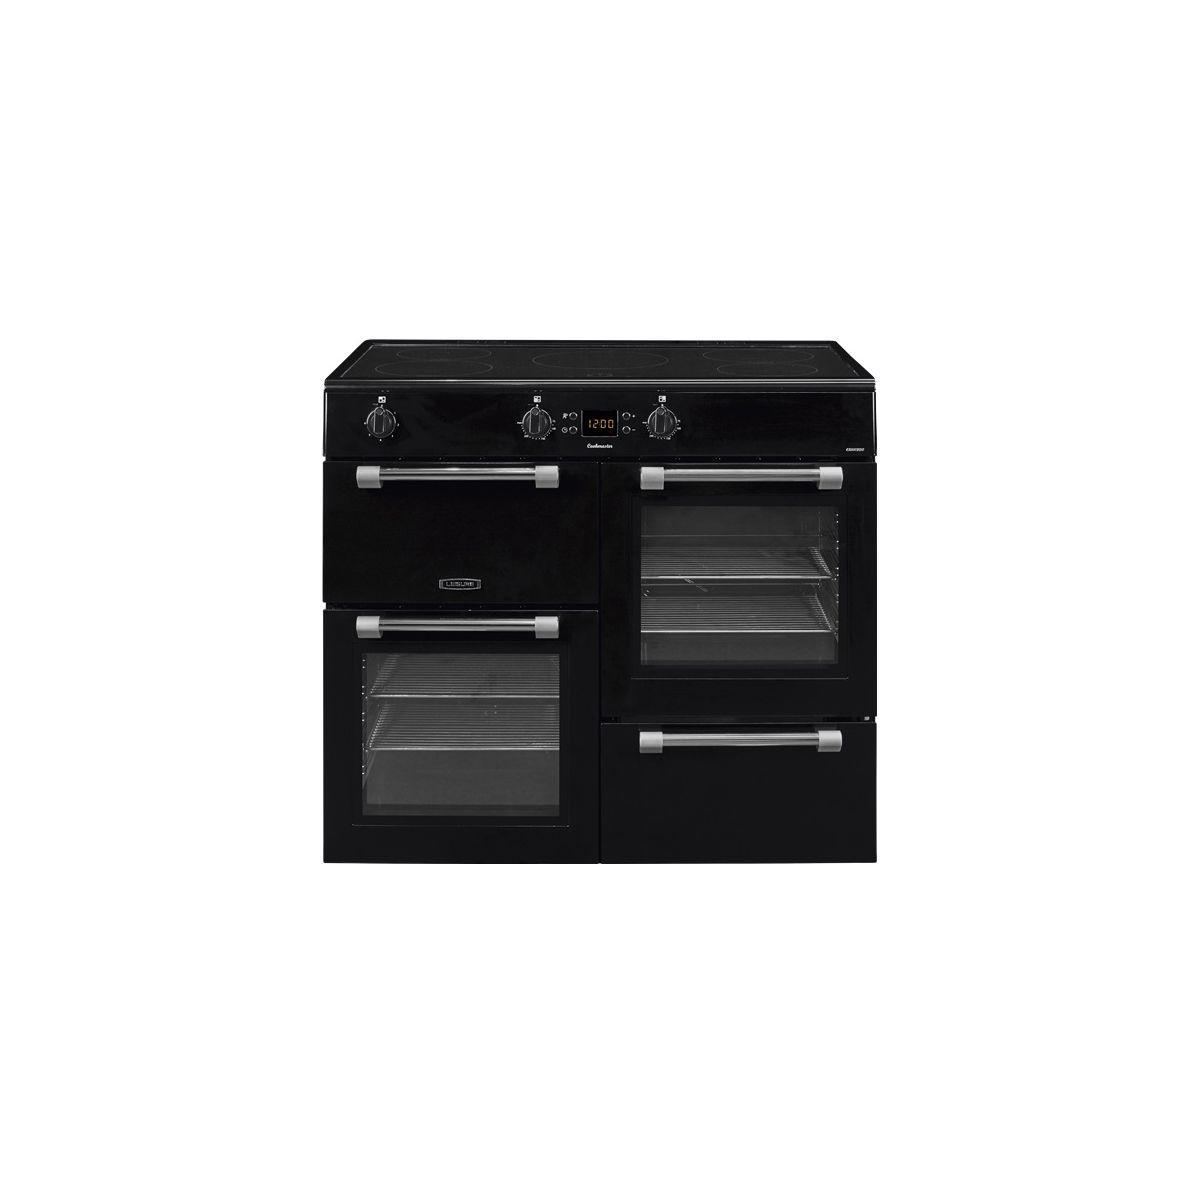 Piano de cuisson induction leisure ck100fib - livraison offerte : code livp (photo)